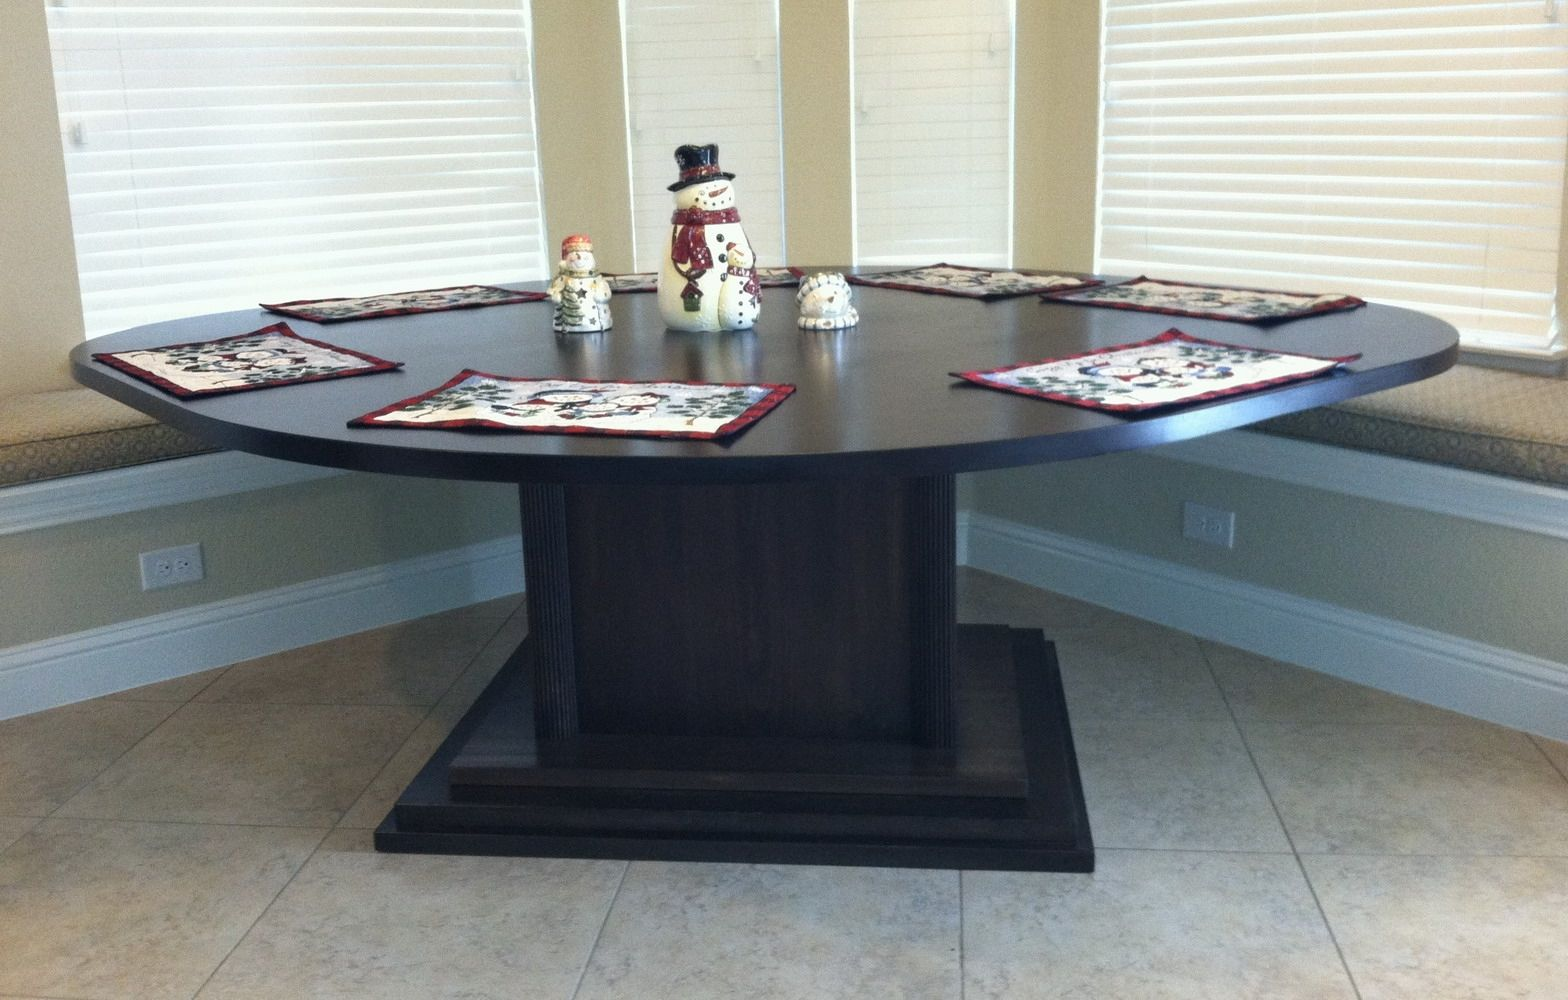 Hand Made Kitchen Area Table For Corner Bench Seating By North Texas Wood Works